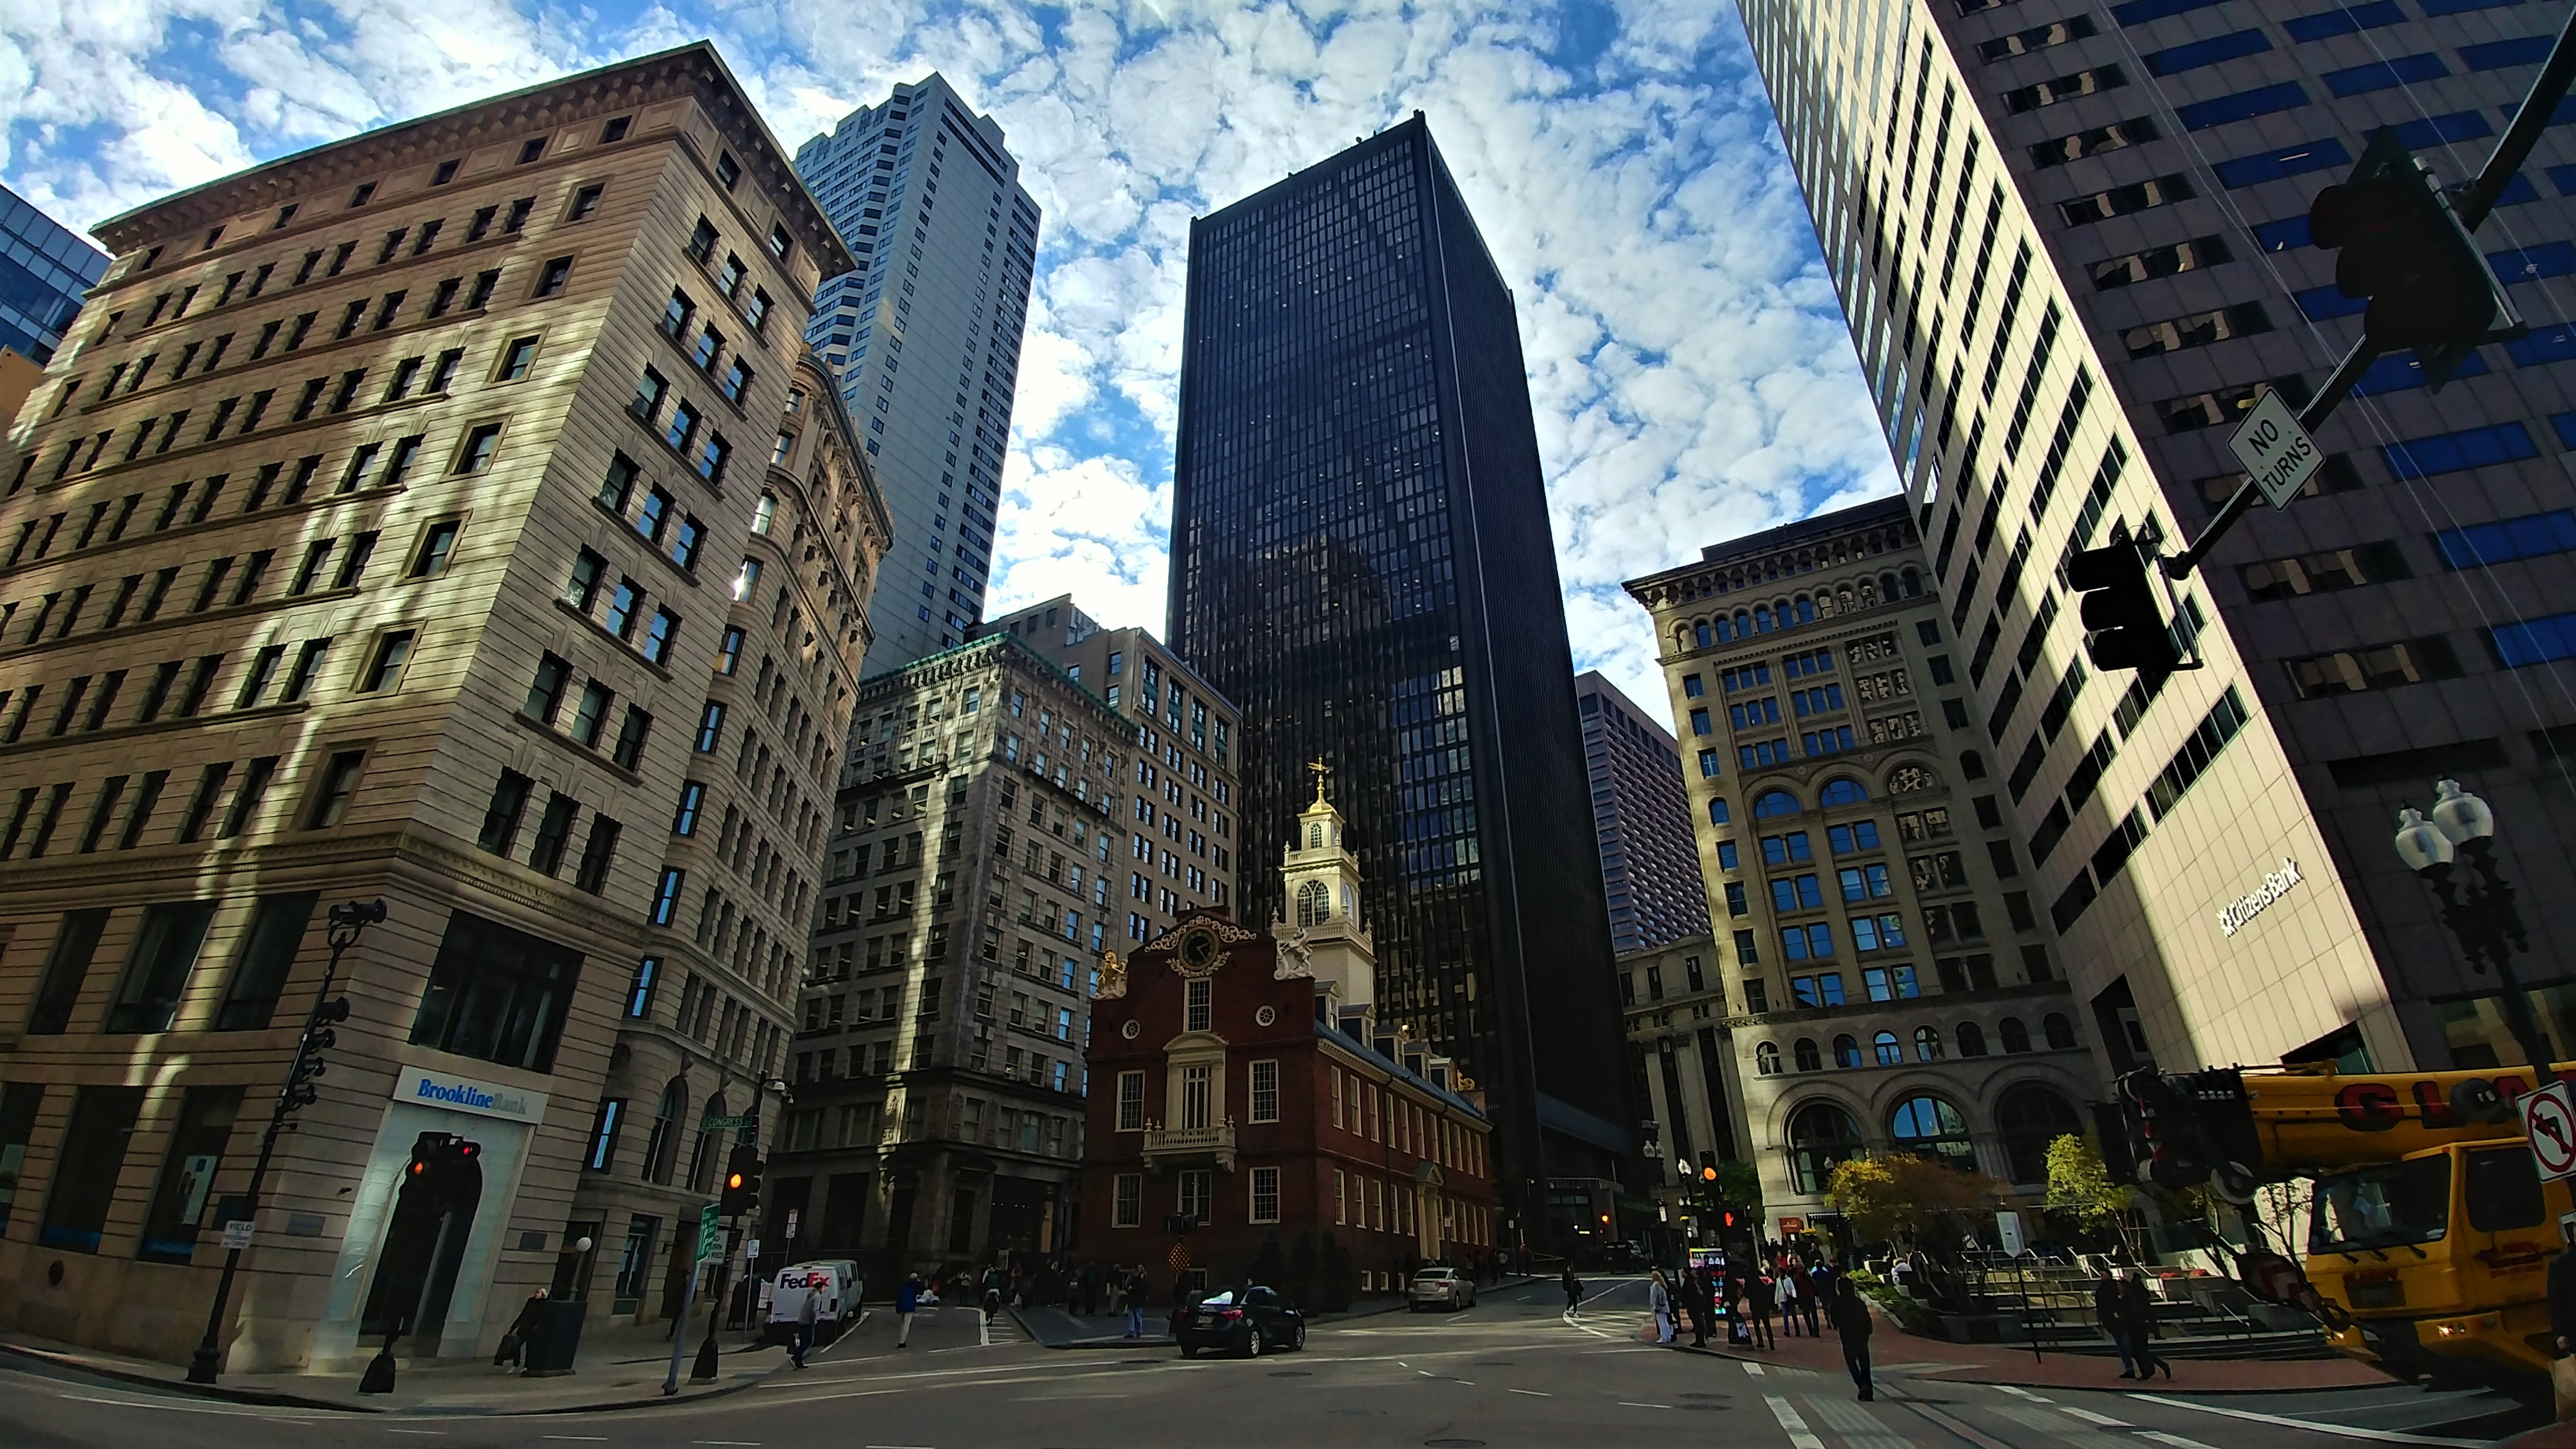 boston old state house usa voyage road-trip arpenter le chemin